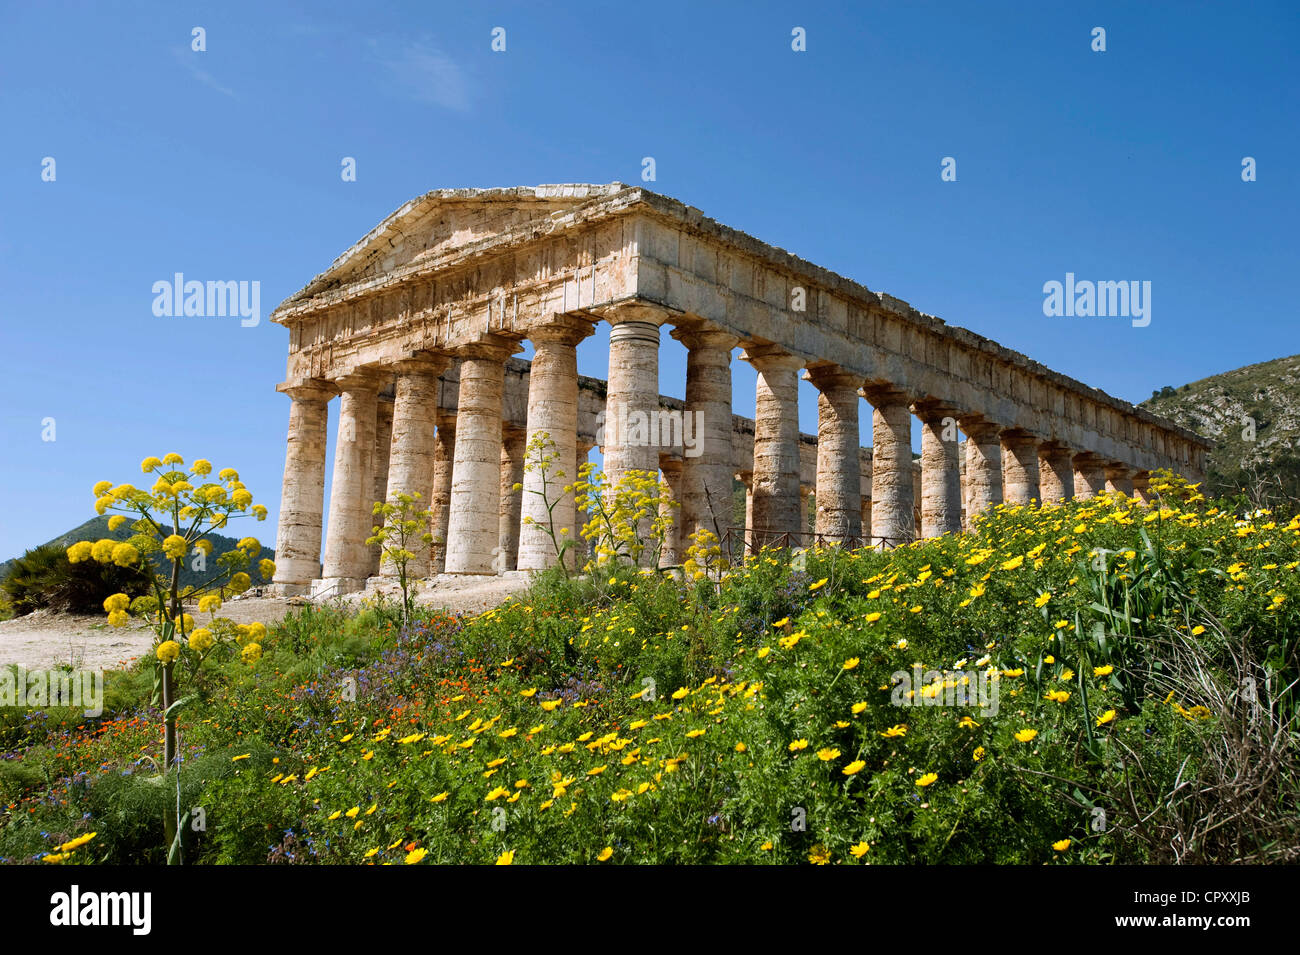 Italy, Sicily, Segesta archeological site, Doric temple built in 430 BC - Stock Image